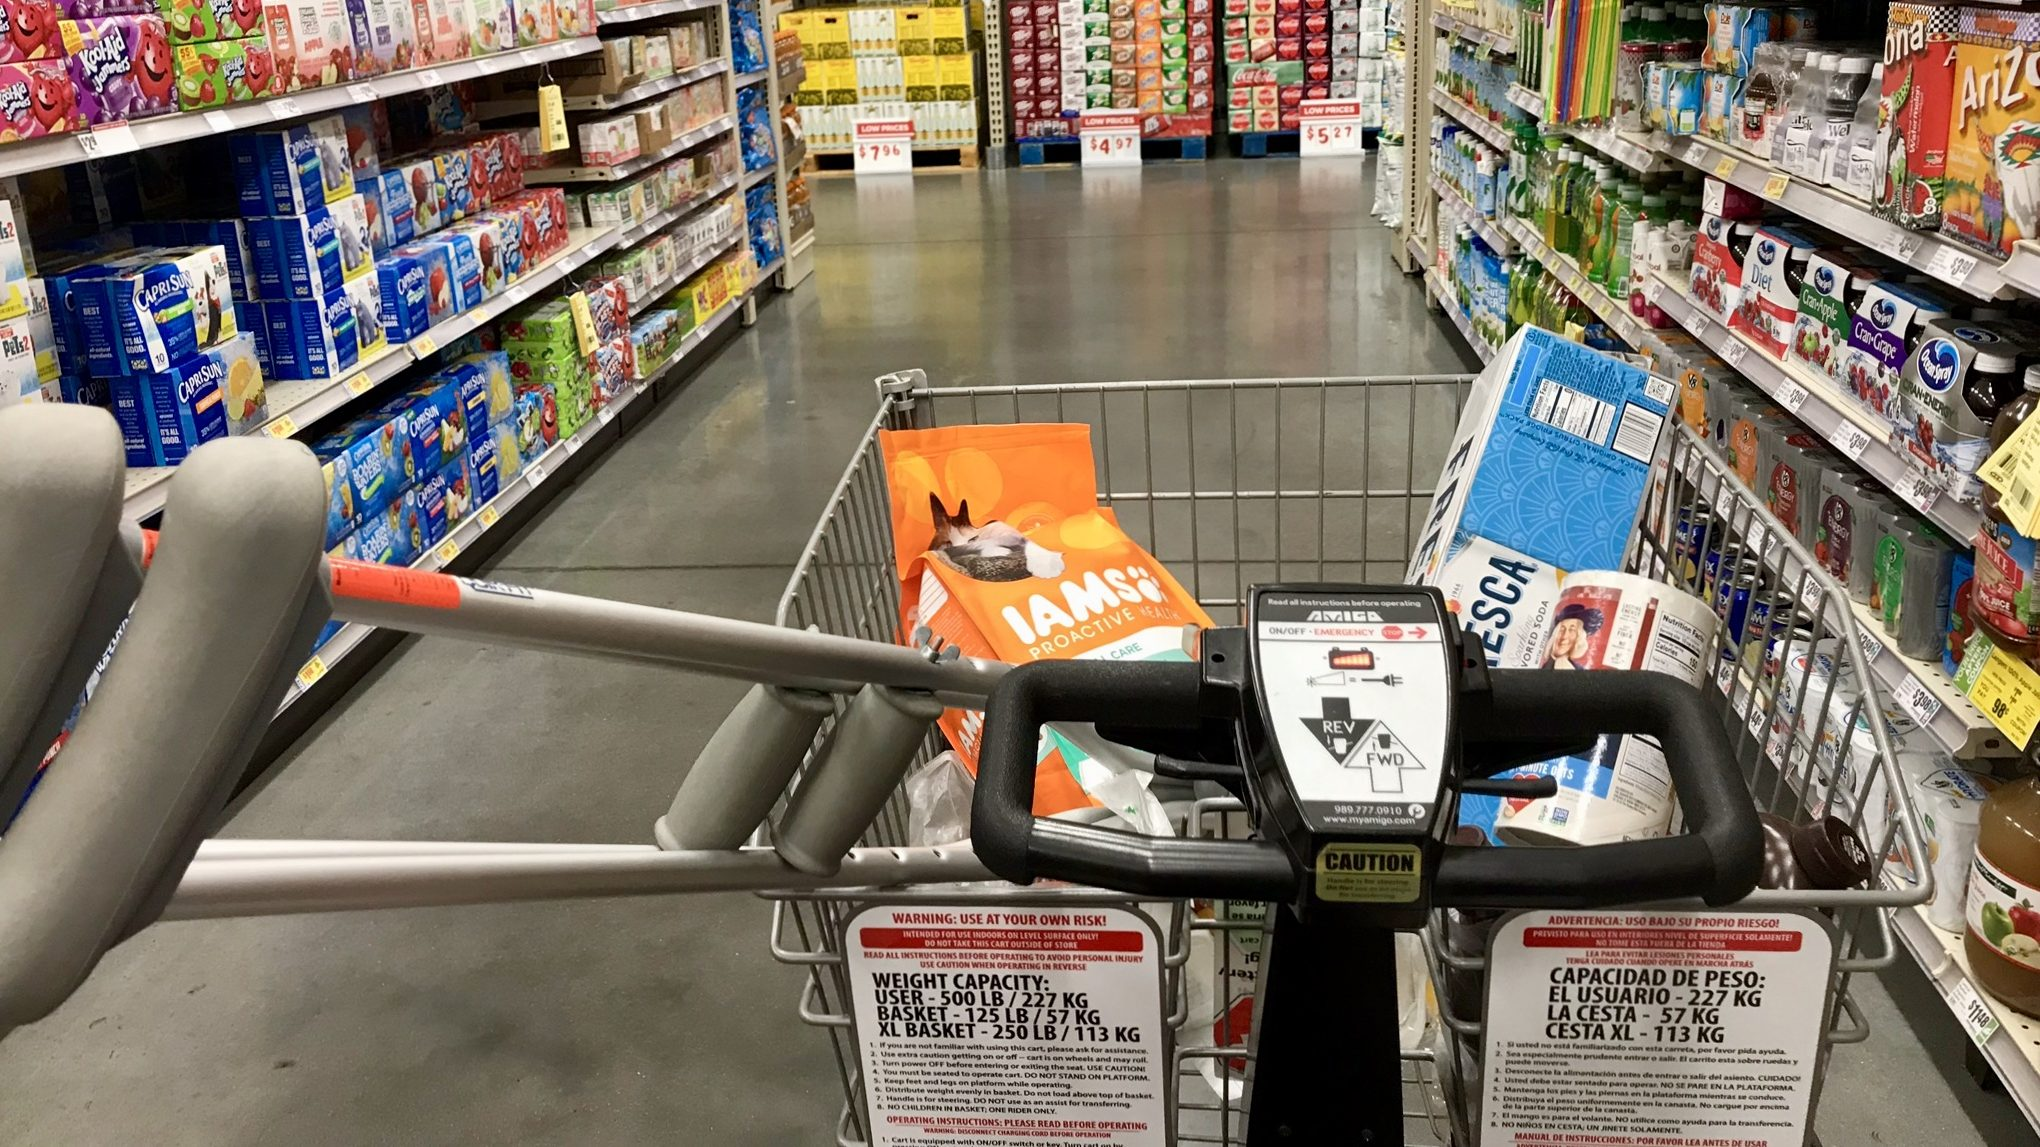 Hell on Wheels – My Trip to the Grocery Store While One-Legged